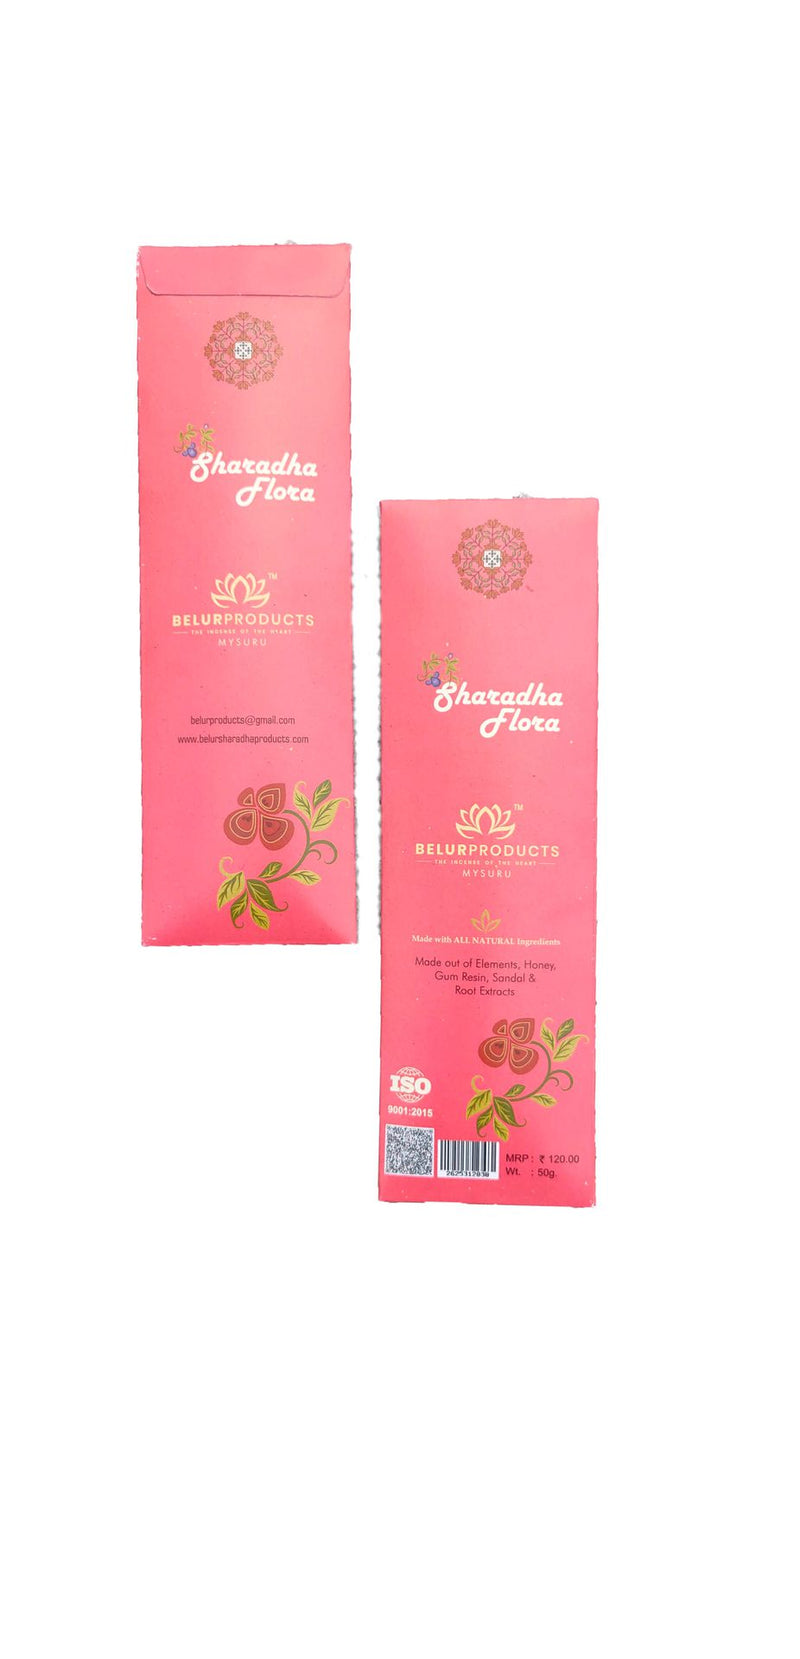 Sharadha Flora Incense Stick